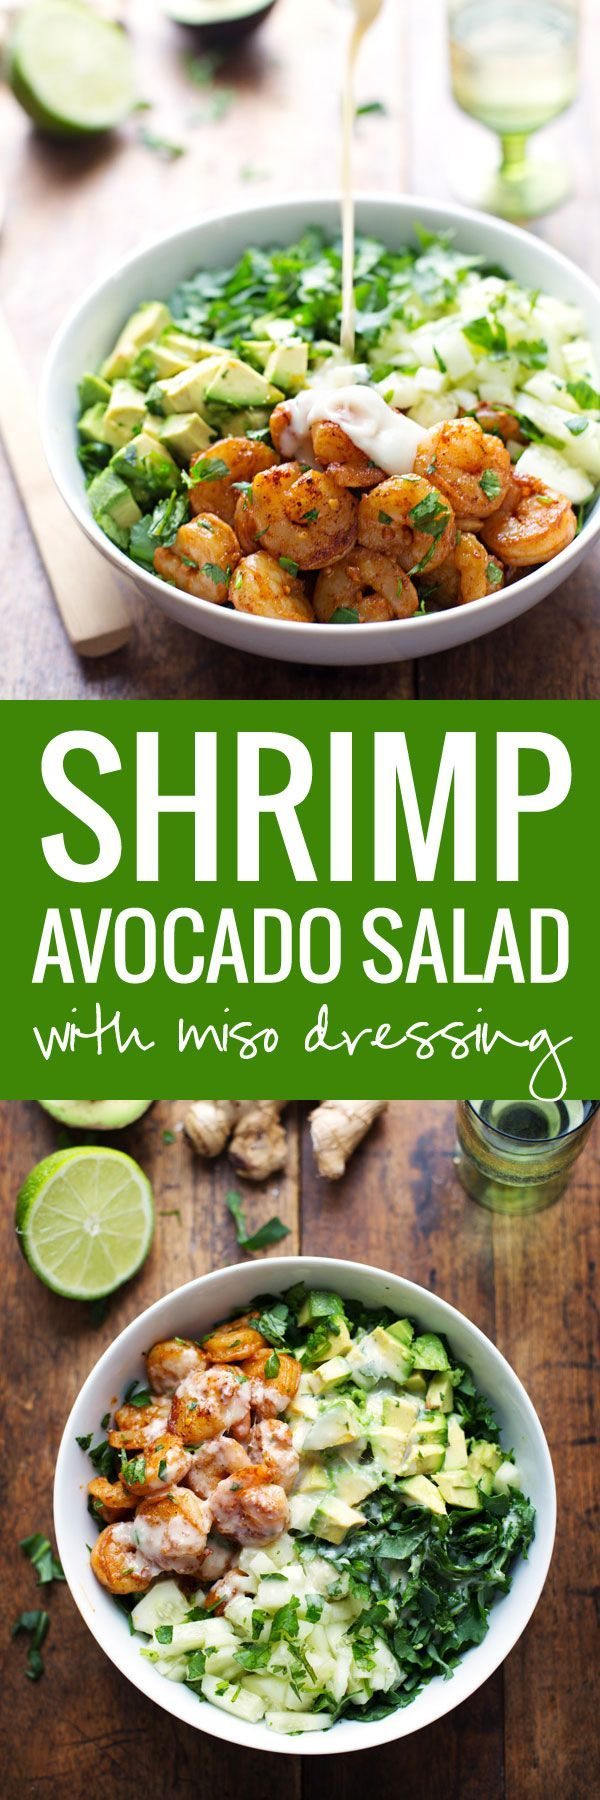 This Spicy Shrimp and Avocado Salad has cucumbers, baby kale, shrimp, and avocado with a creamy miso dressing. SO YUMMAY. | http://pinchofyum.com